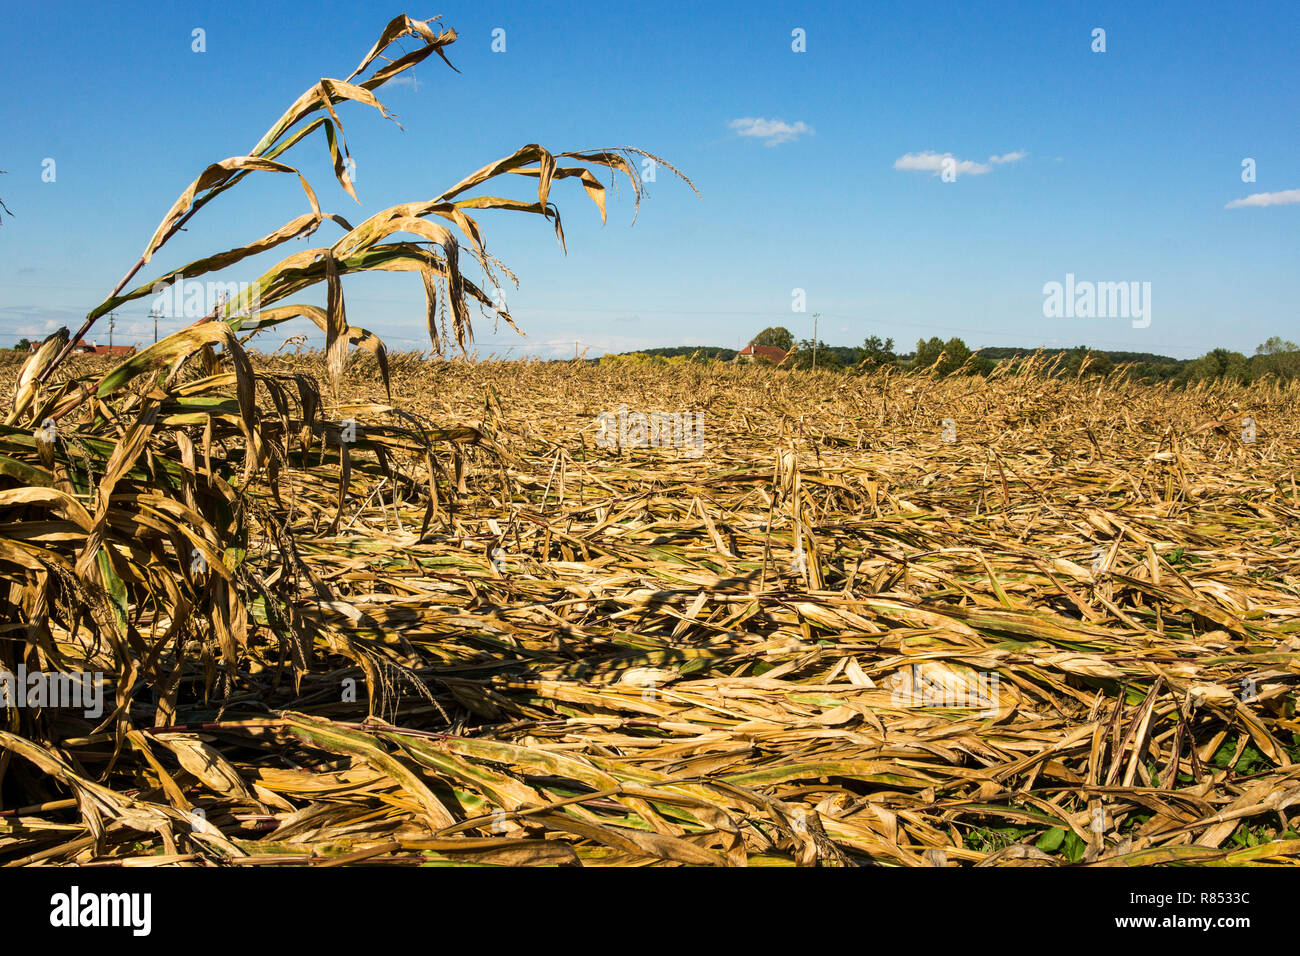 Maize (Zea mays).Corn on the cob or Indian Corn. Crop ruined by high winds. - Stock Image